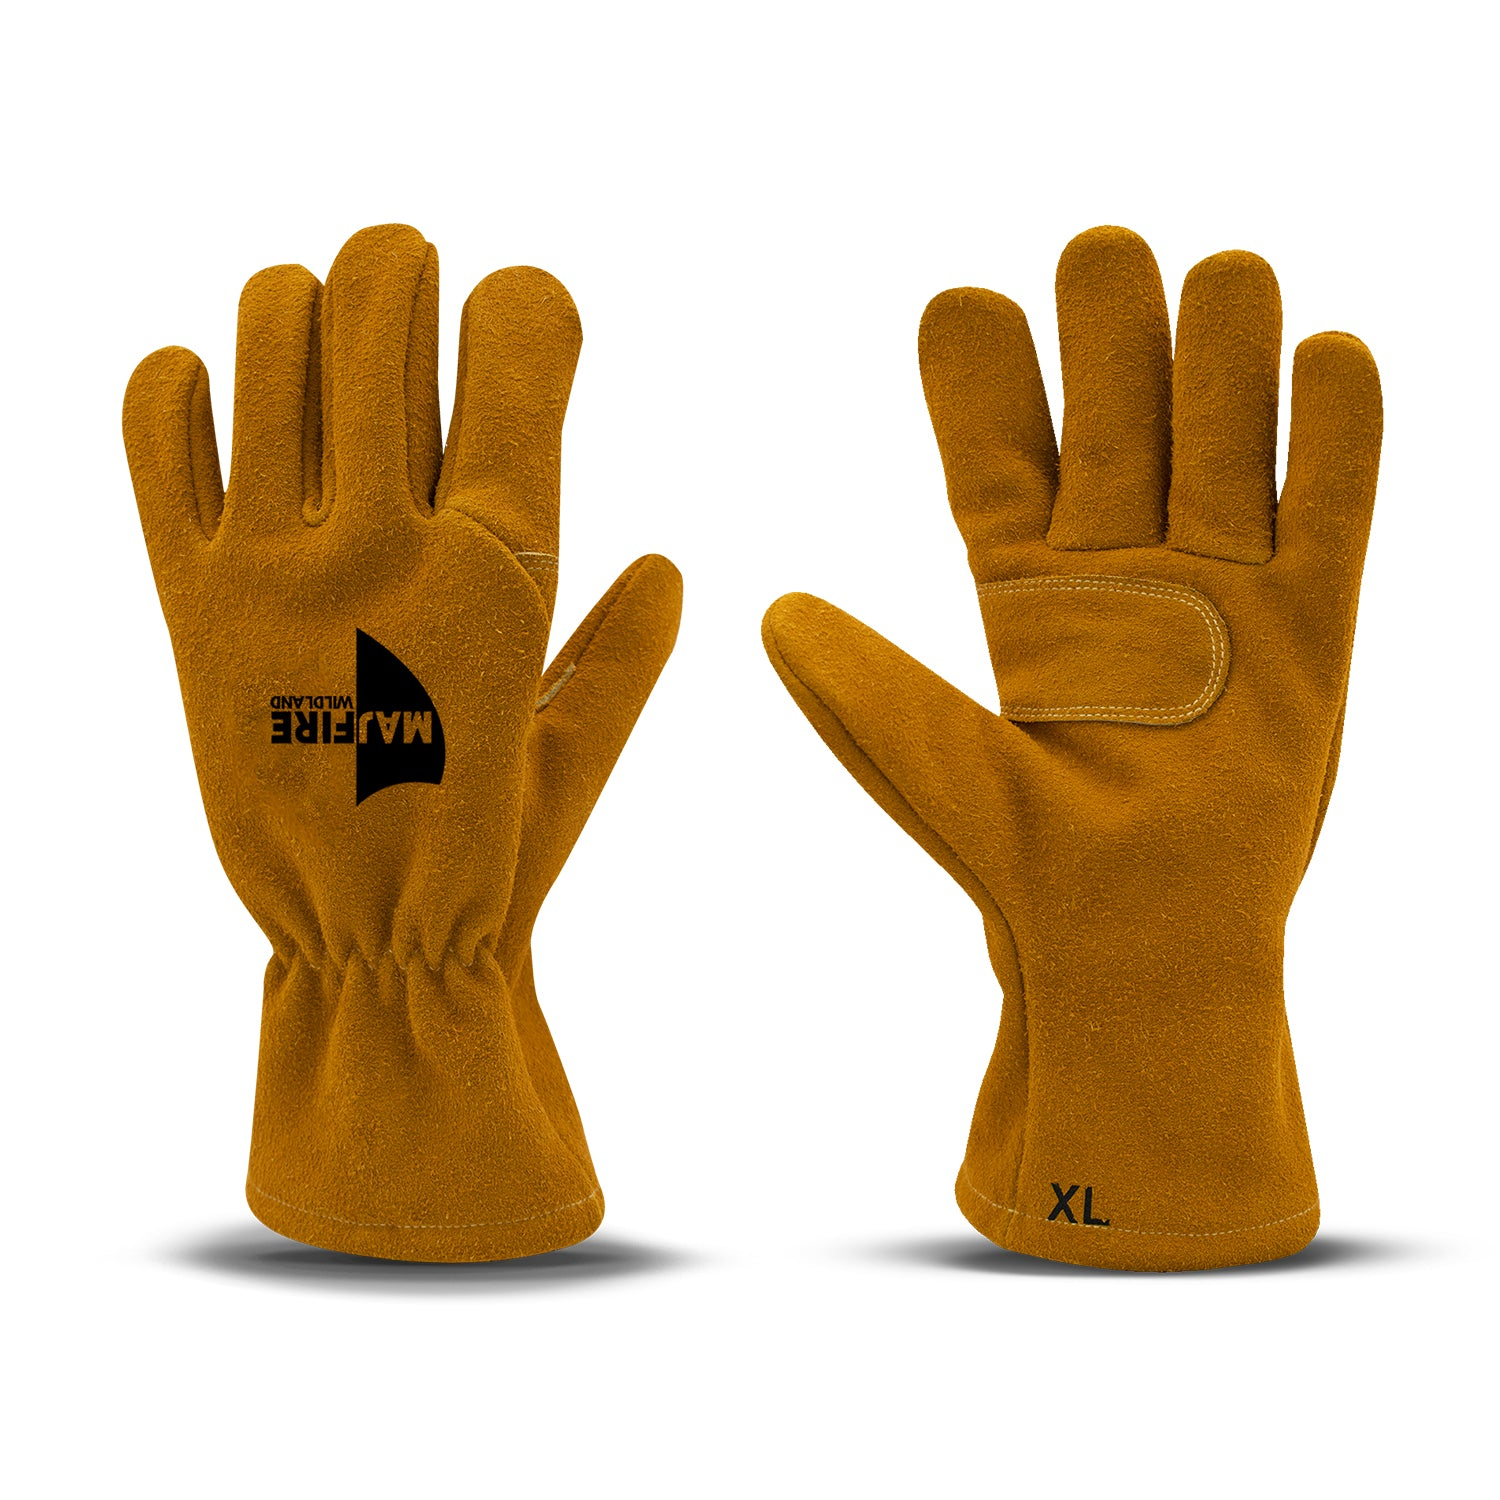 Majestic Fire Apparel: PRE-ORDER NEW MFA Wildland Firefighting Gloves